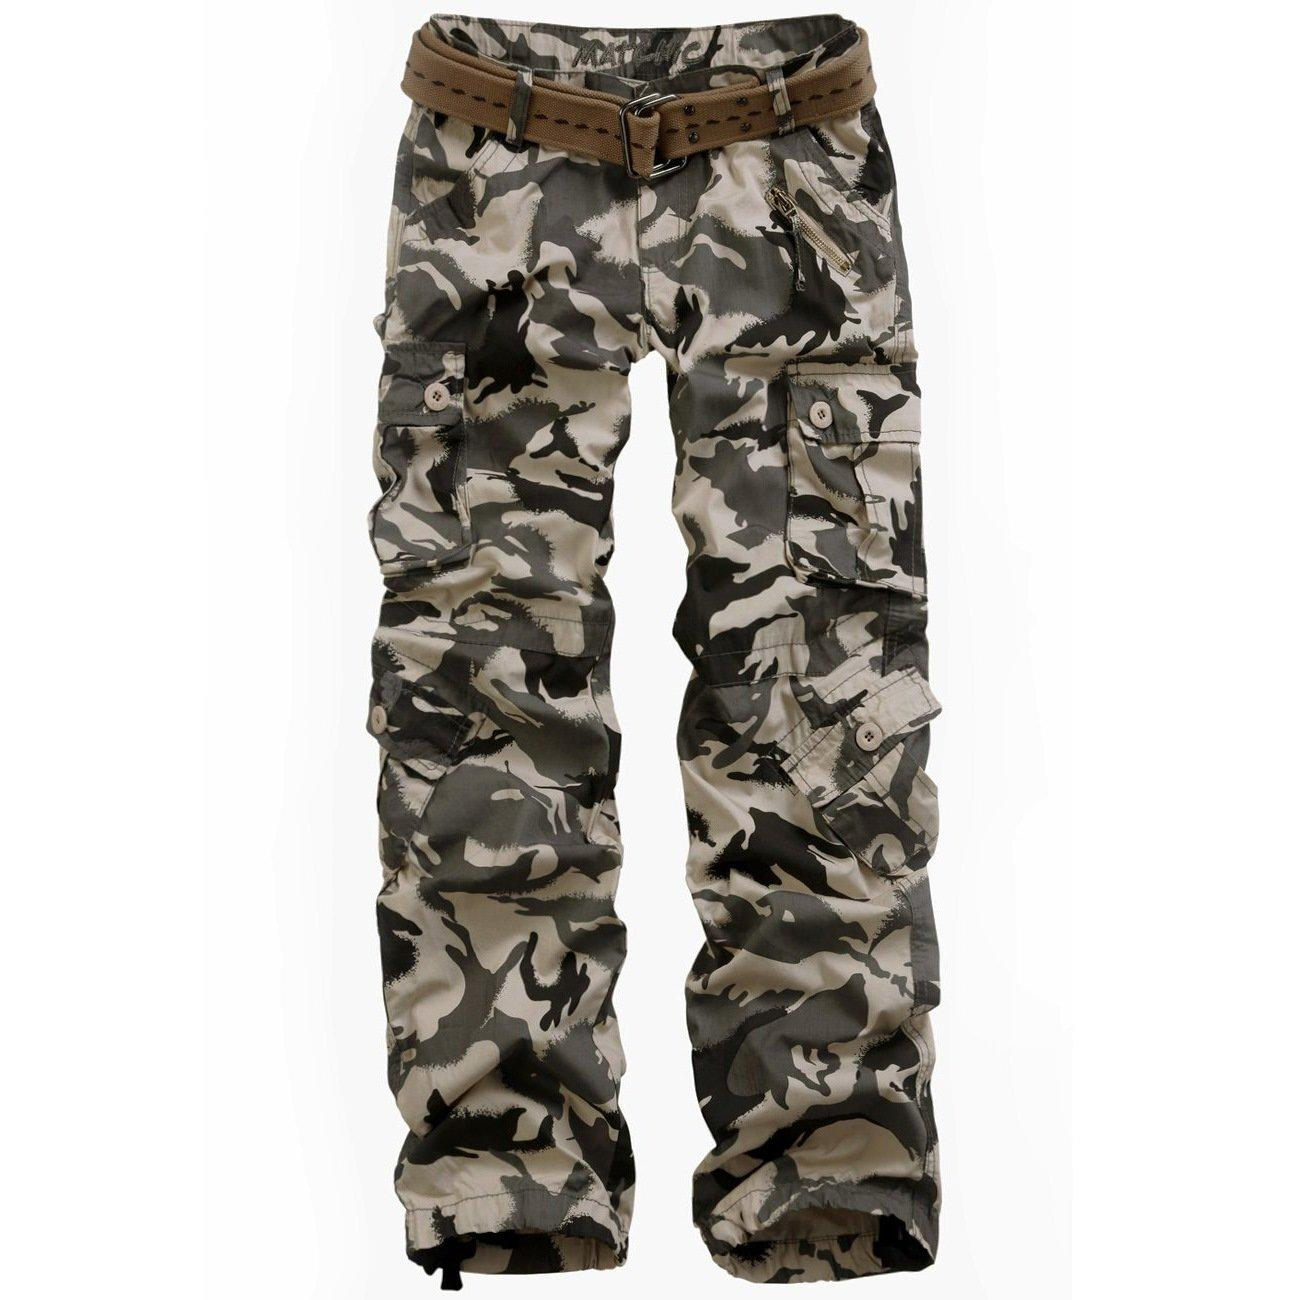 Match Juniors Camouflage Cargo Pants 3 from Amazon | Clothes